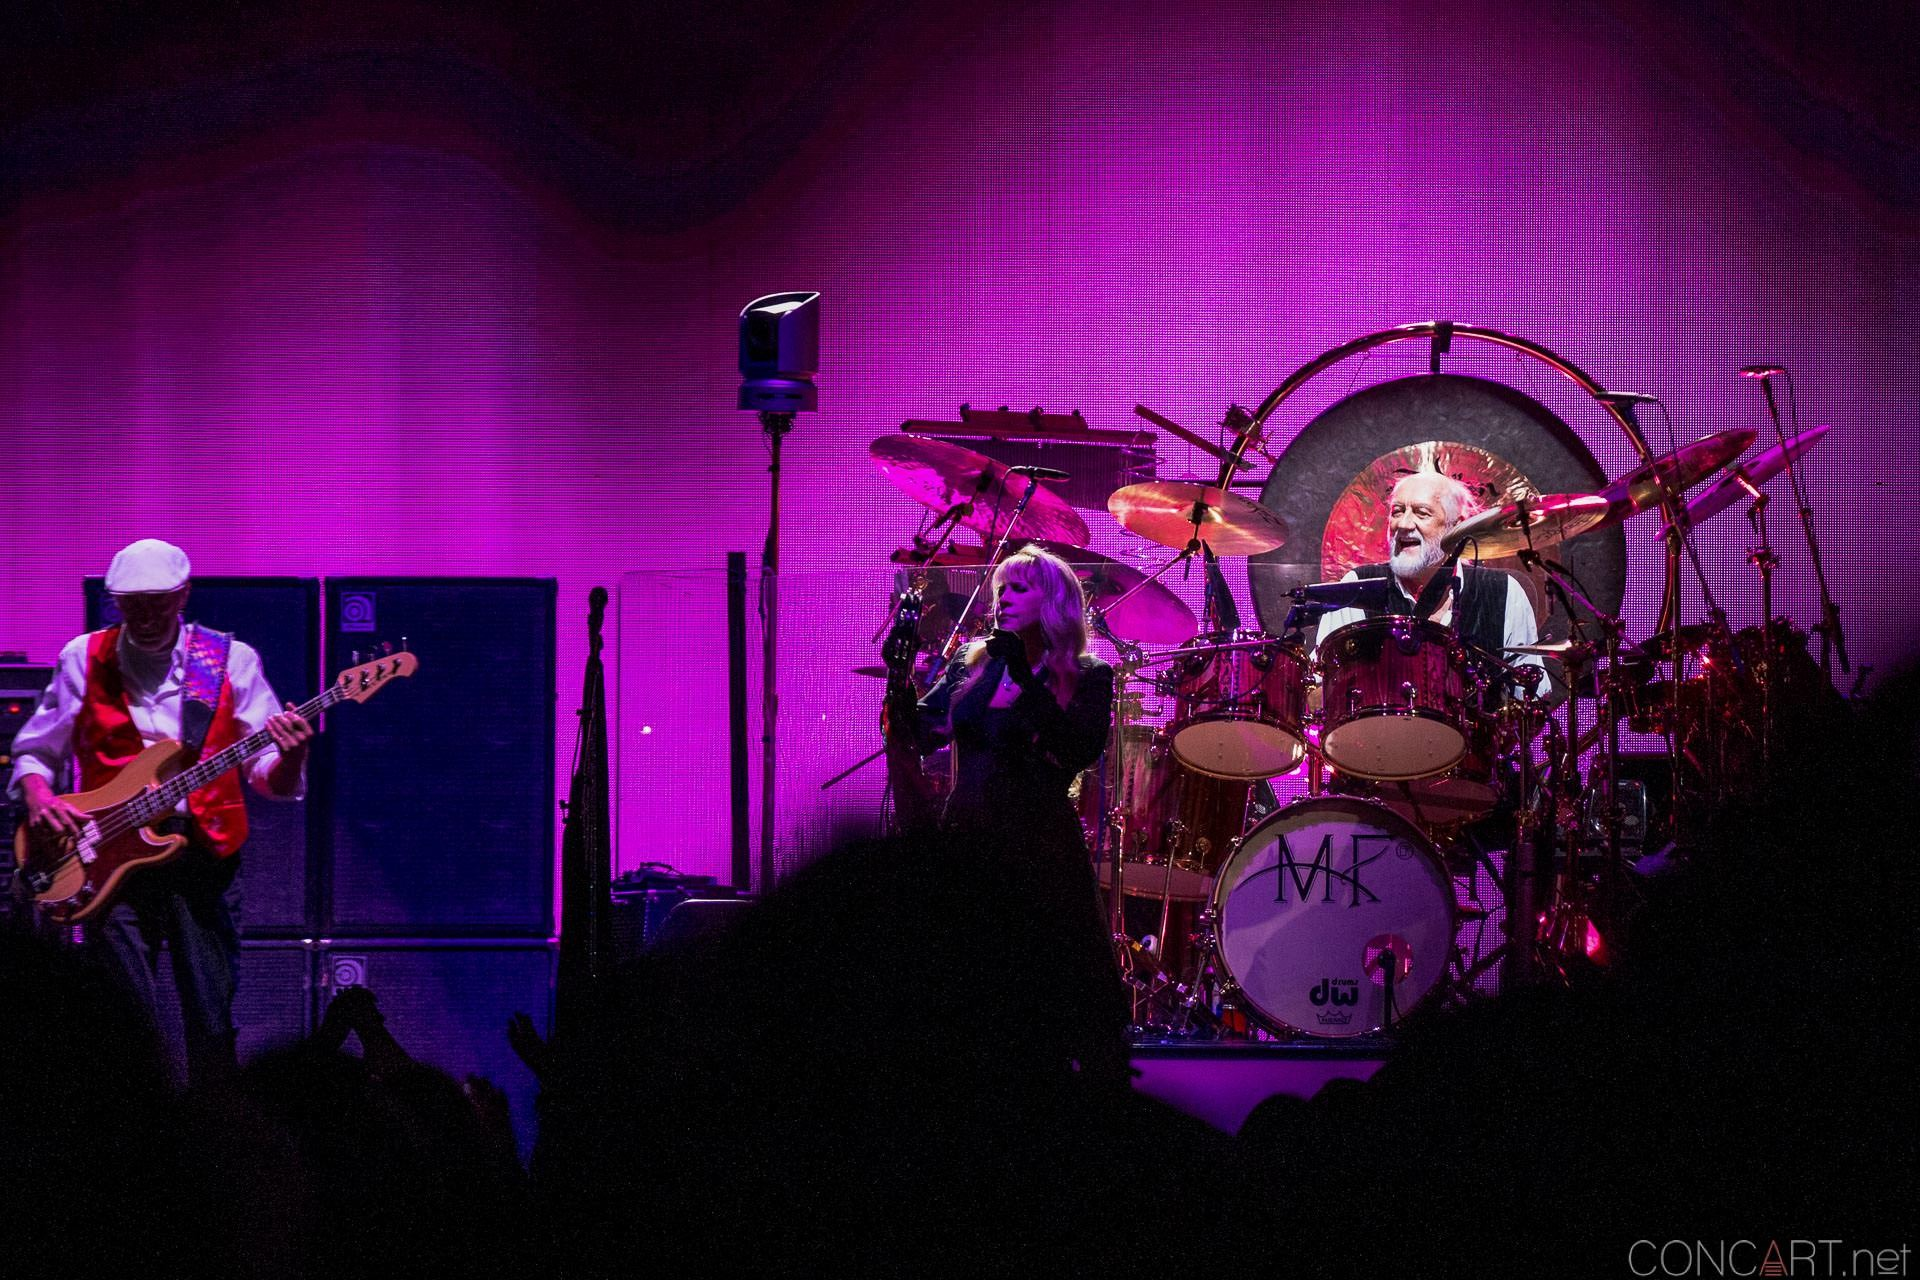 013-fleetwood-mac-live-indianapolis-bankers-life-fieldhouse-2014